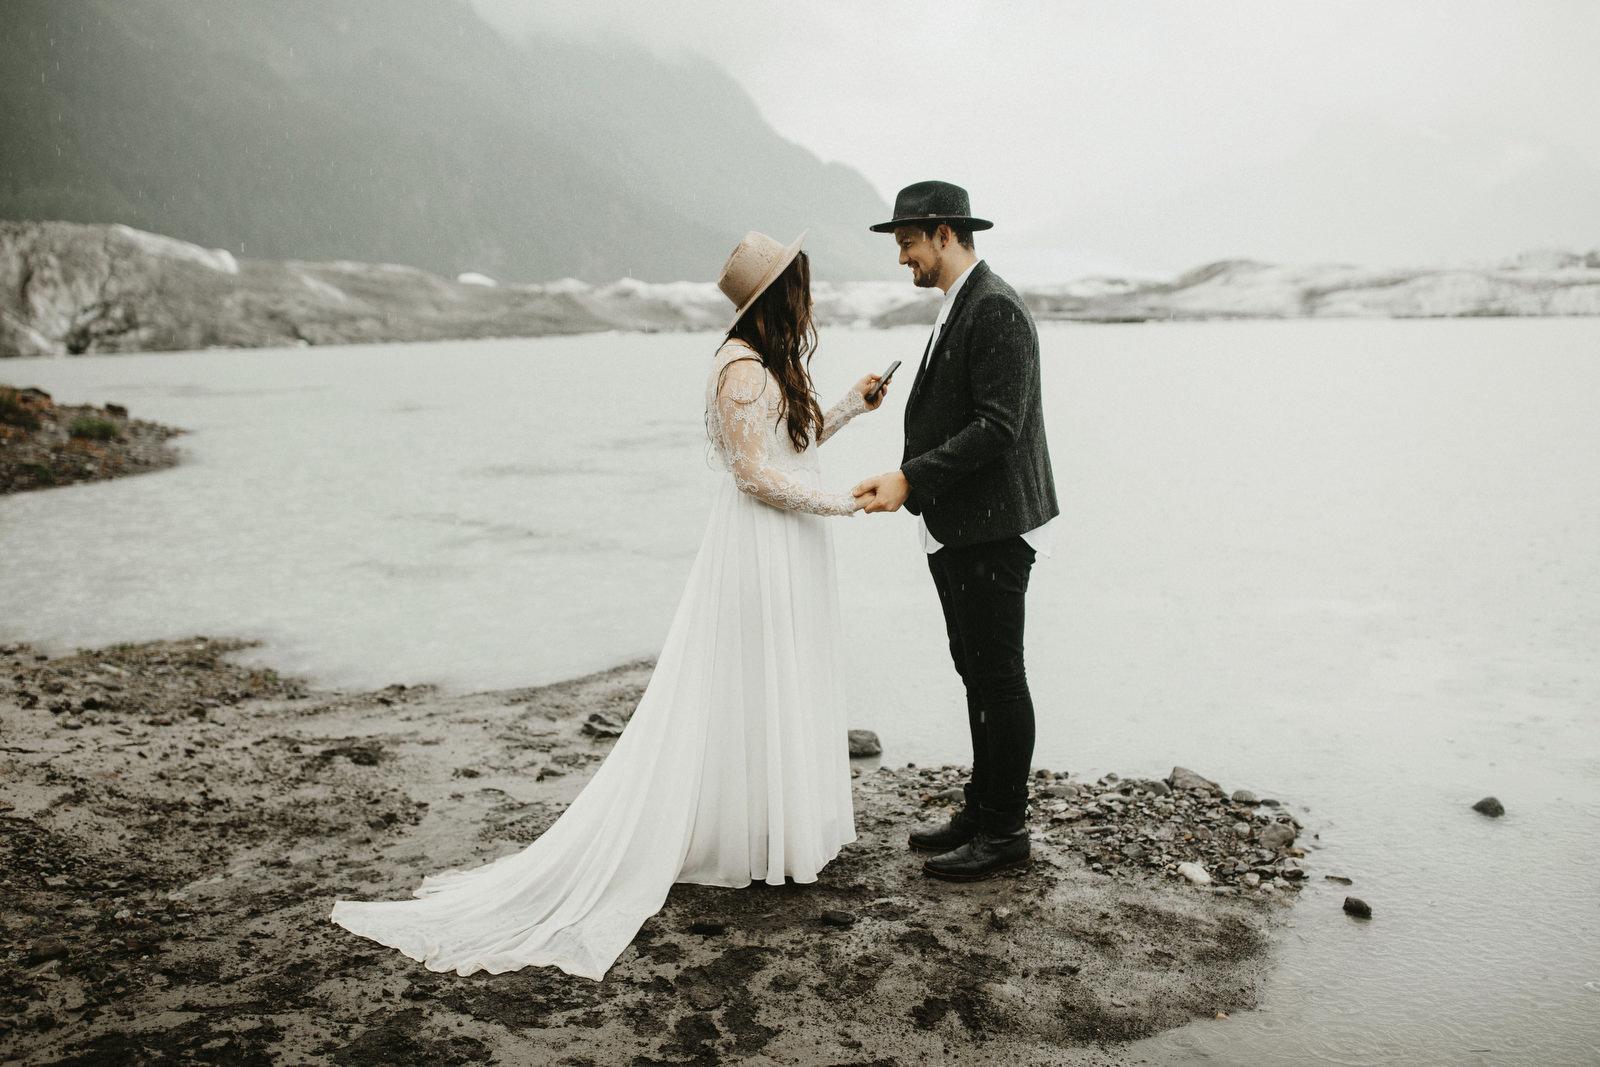 athena-and-camron-alaska-elopement-wedding-inspiration-india-earl-athena-grace-glacier-lagoon-wedding77